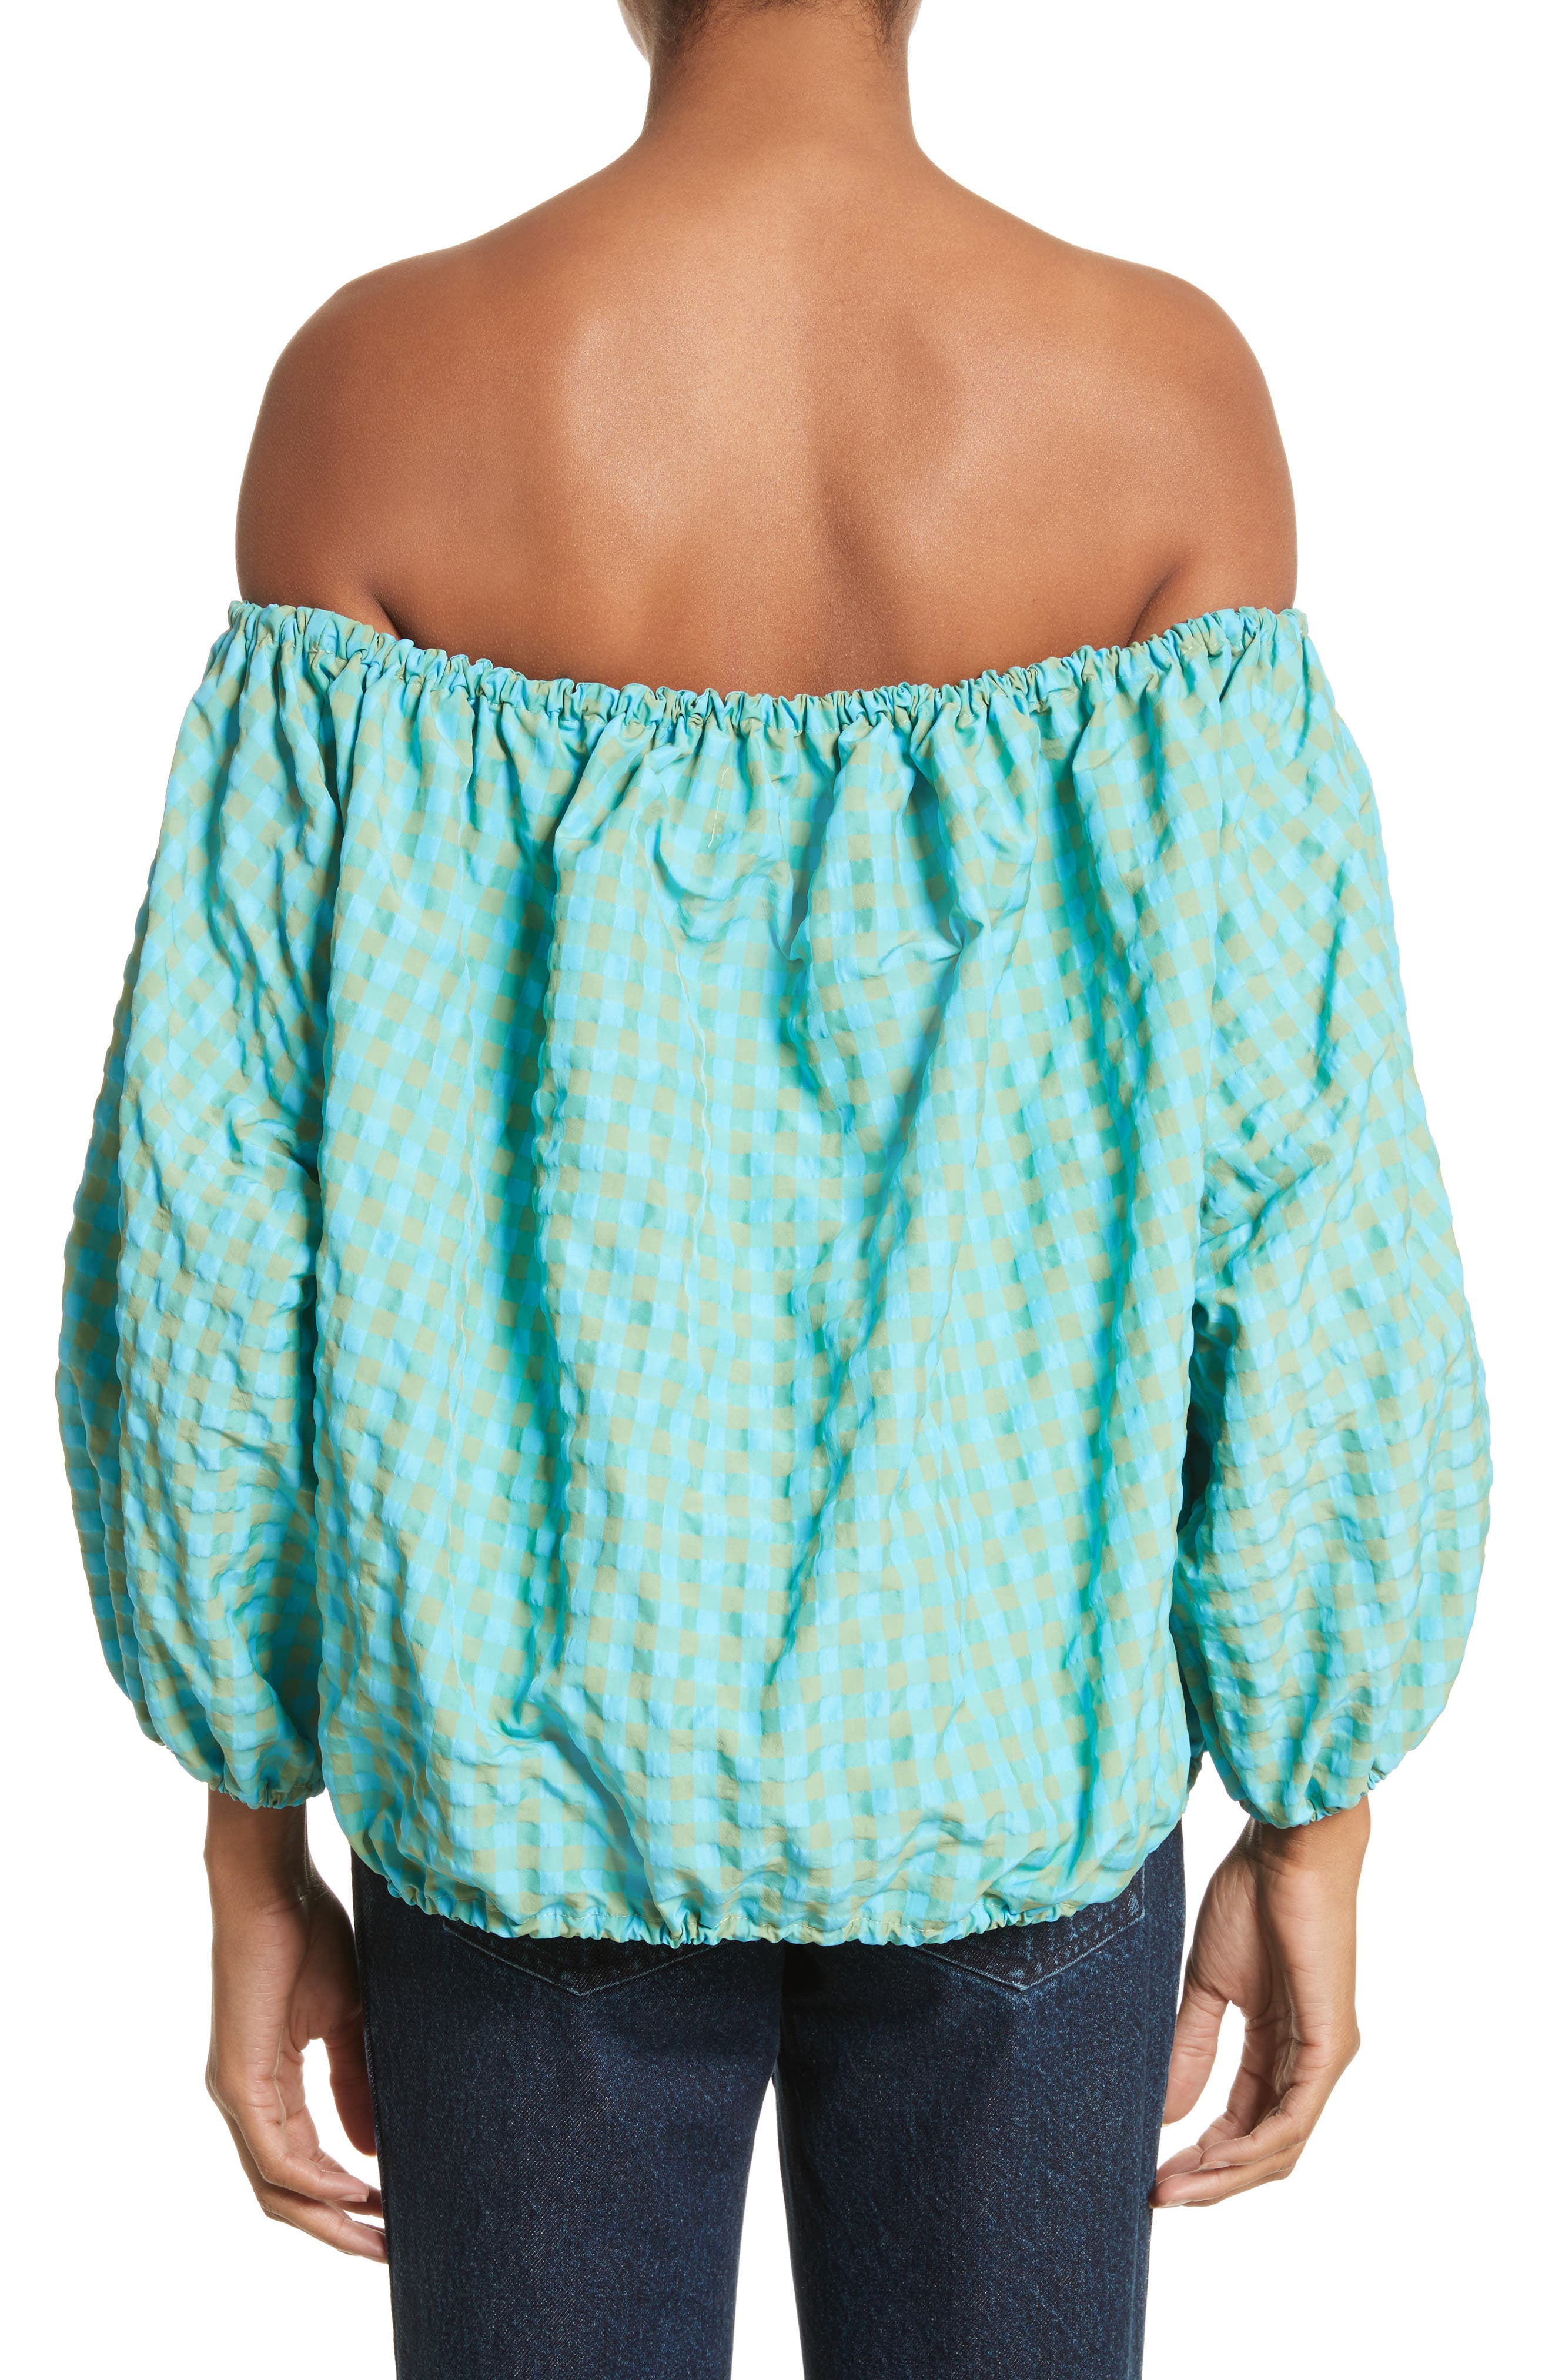 Marques'Almeida Off the Shoulder Gingham Top,                             Alternate thumbnail 2, color,                             Turquoise Gingham